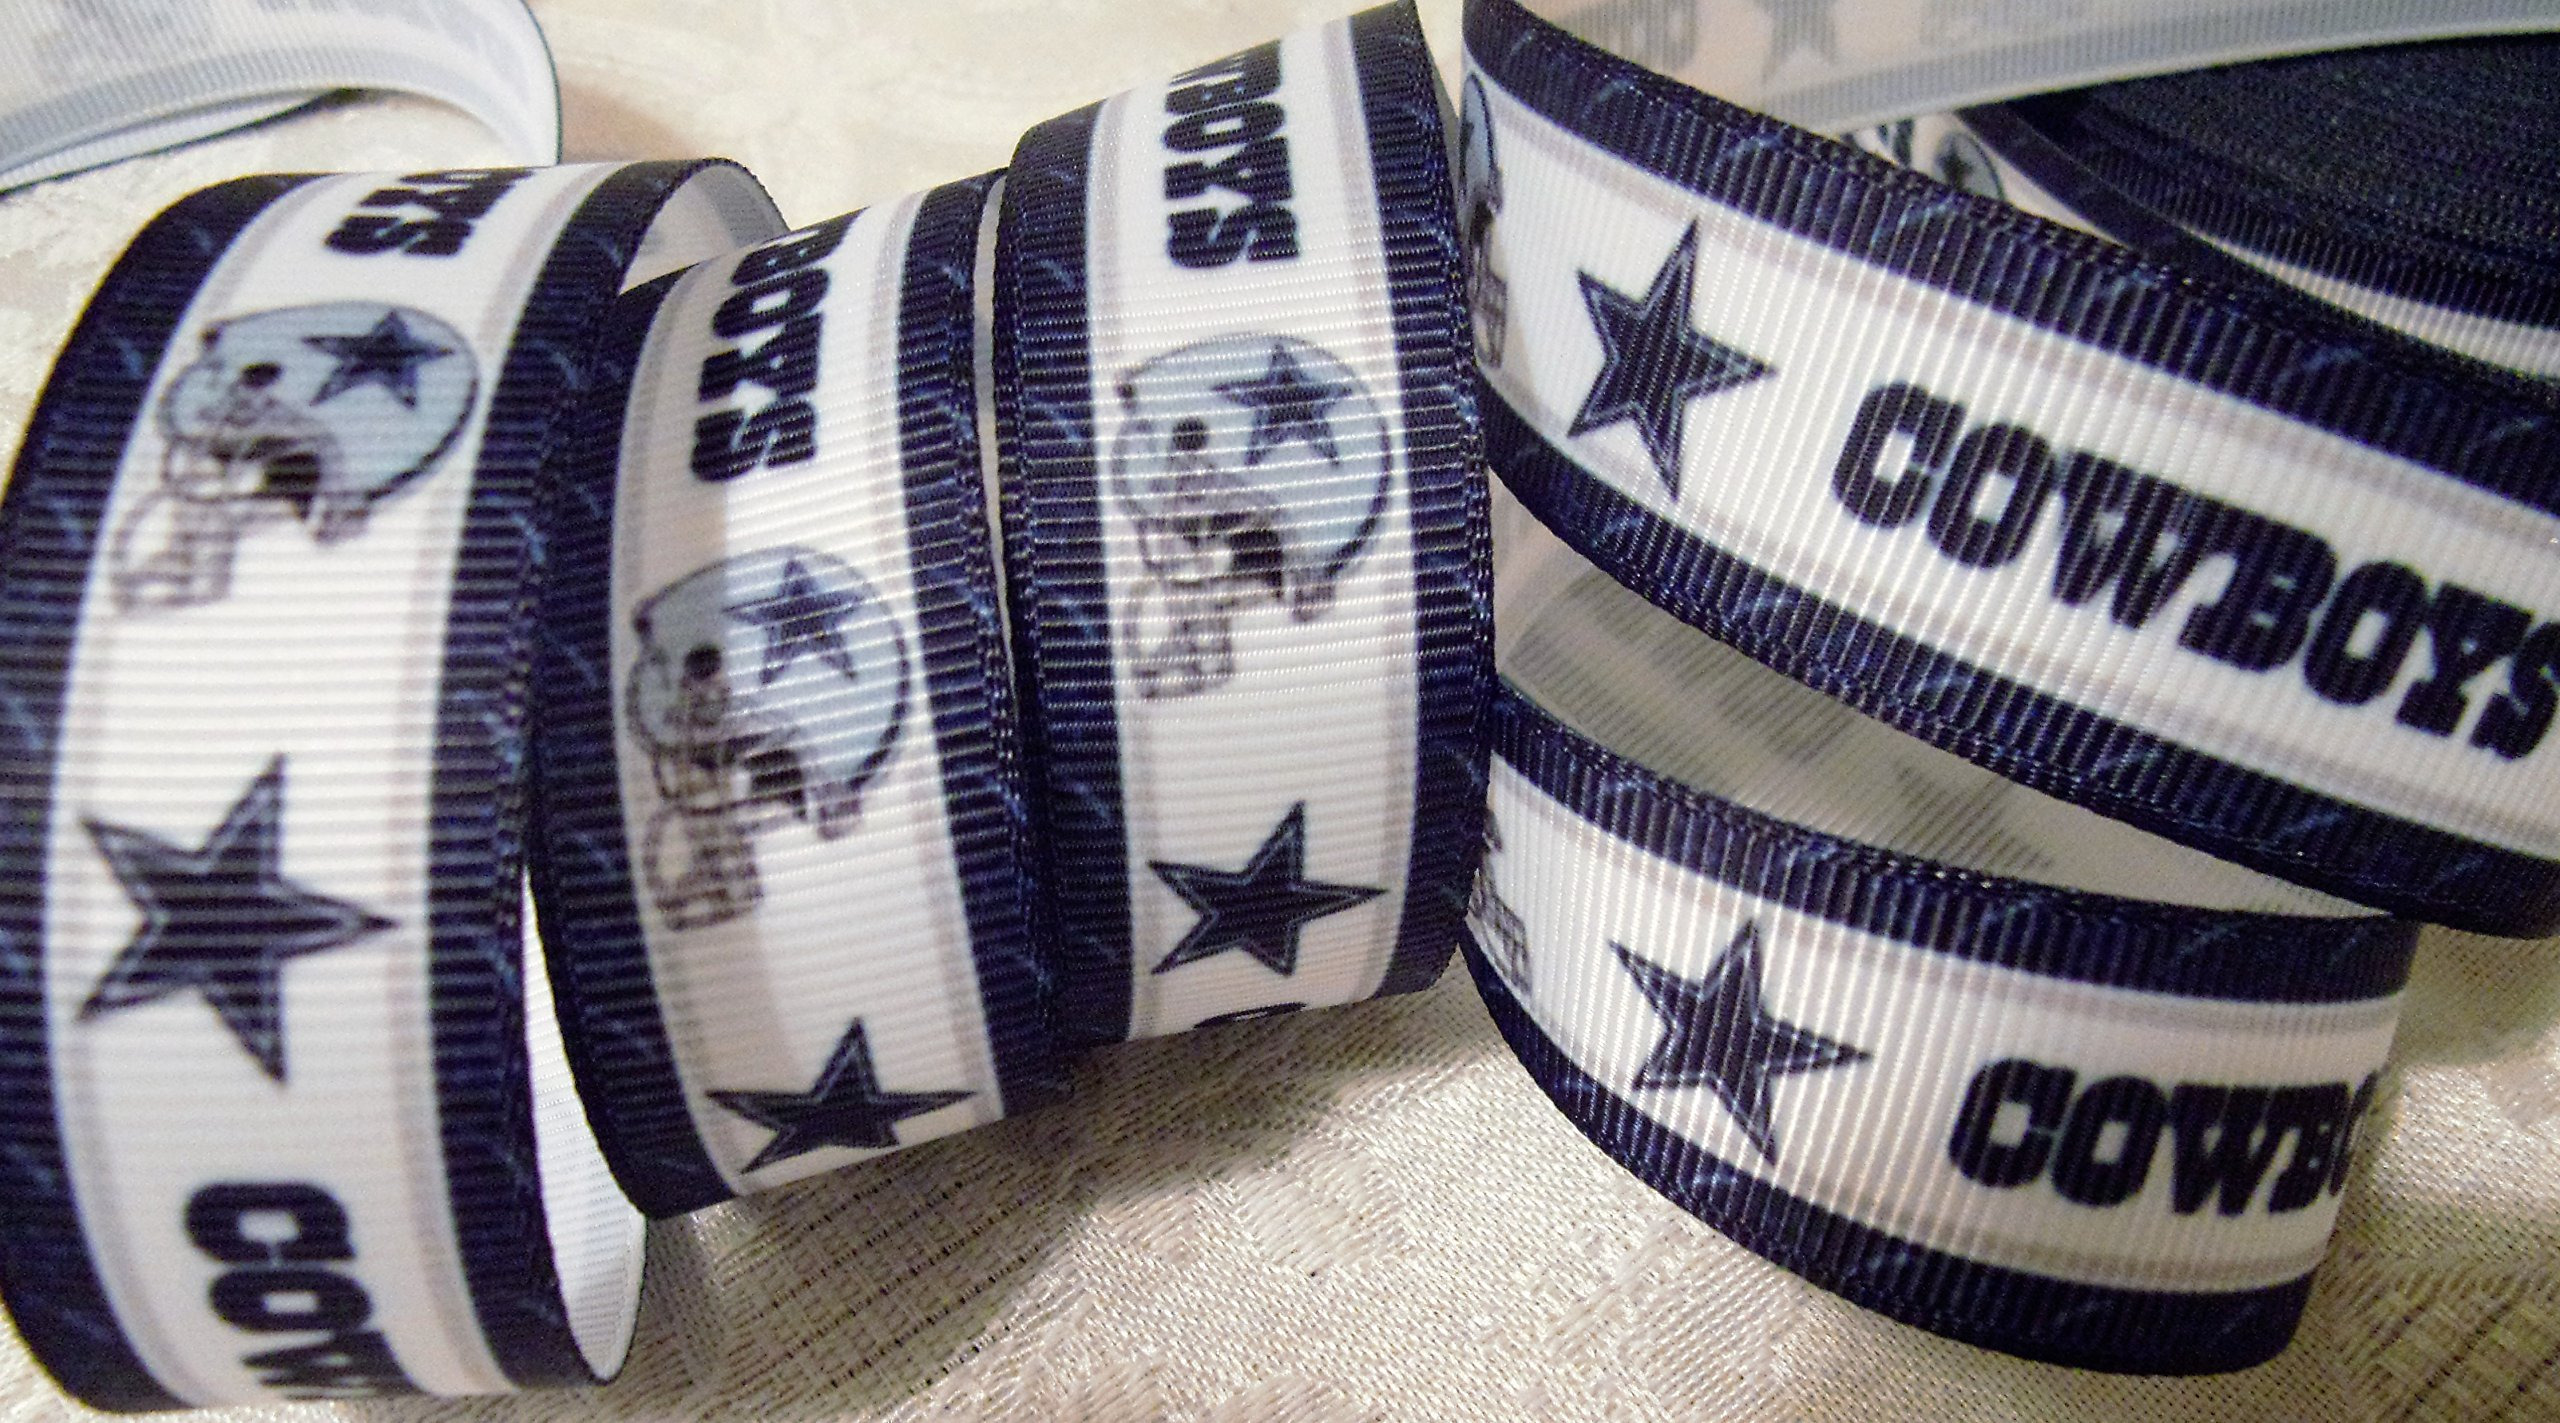 "Grosgrain Ribbon - *COWBOYS INSPIRED SPIRIT PRINT #3* - 7/8"" Wide - 5 Yards - Hair Bows & Crafts"